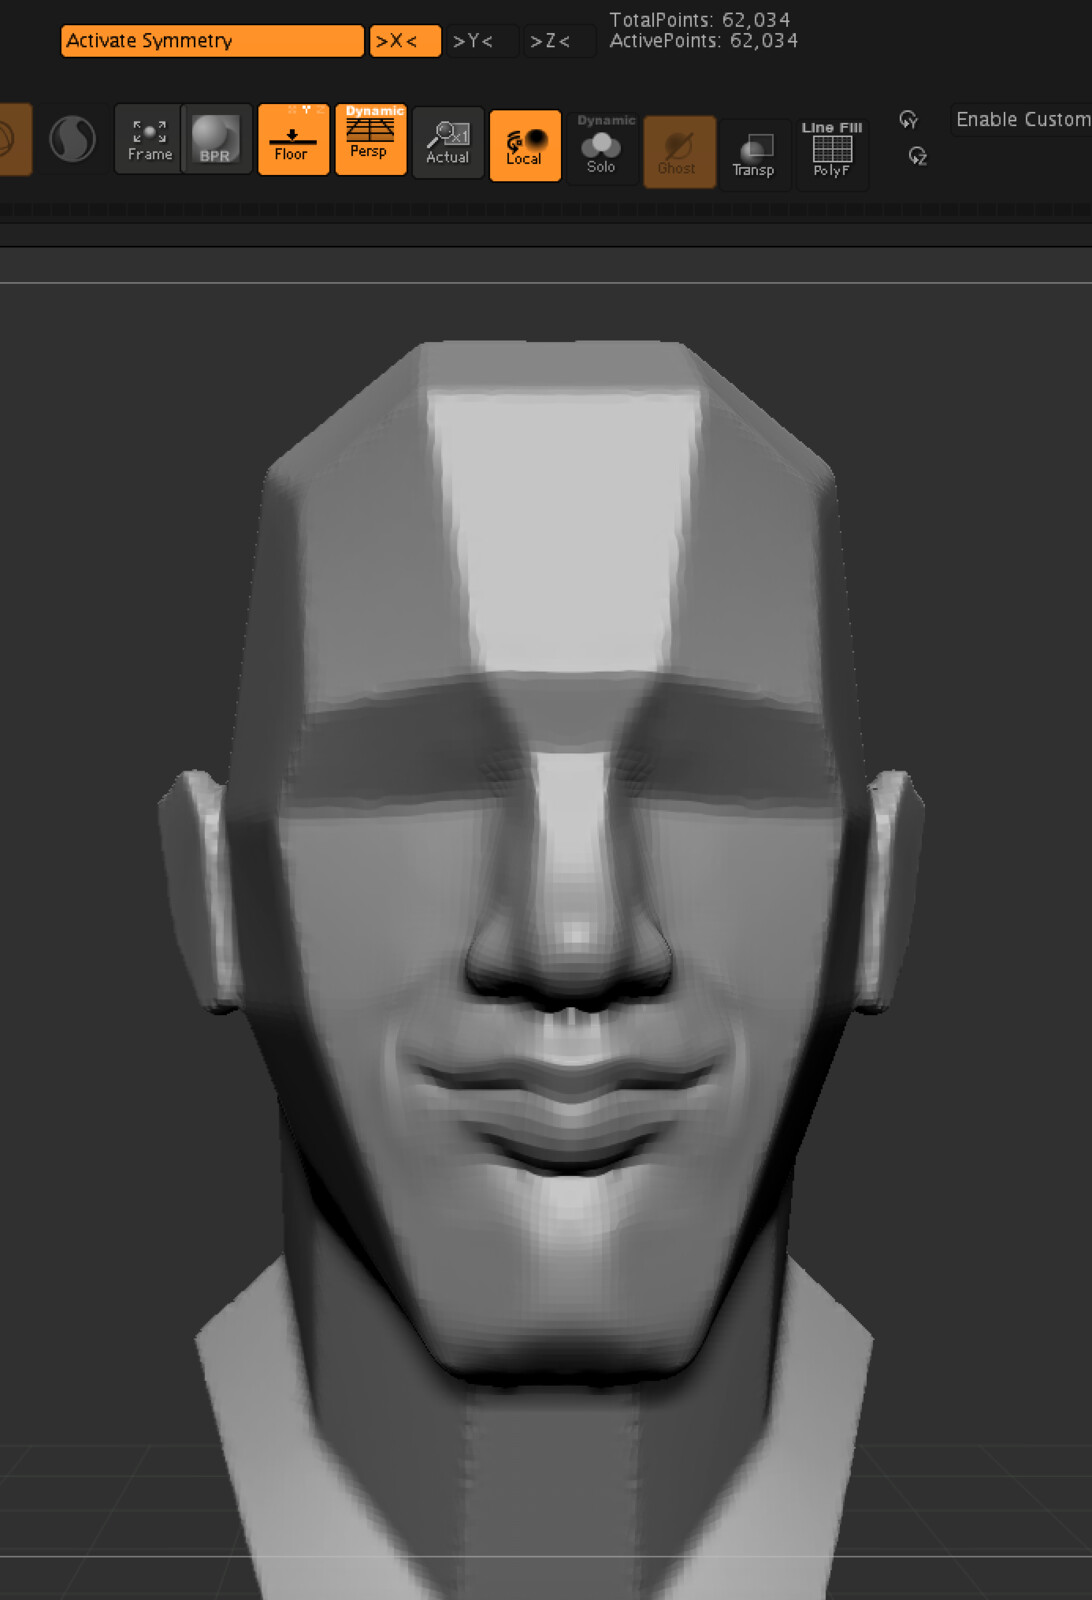 Nose, Mouth, Ears, Eyes - WIP